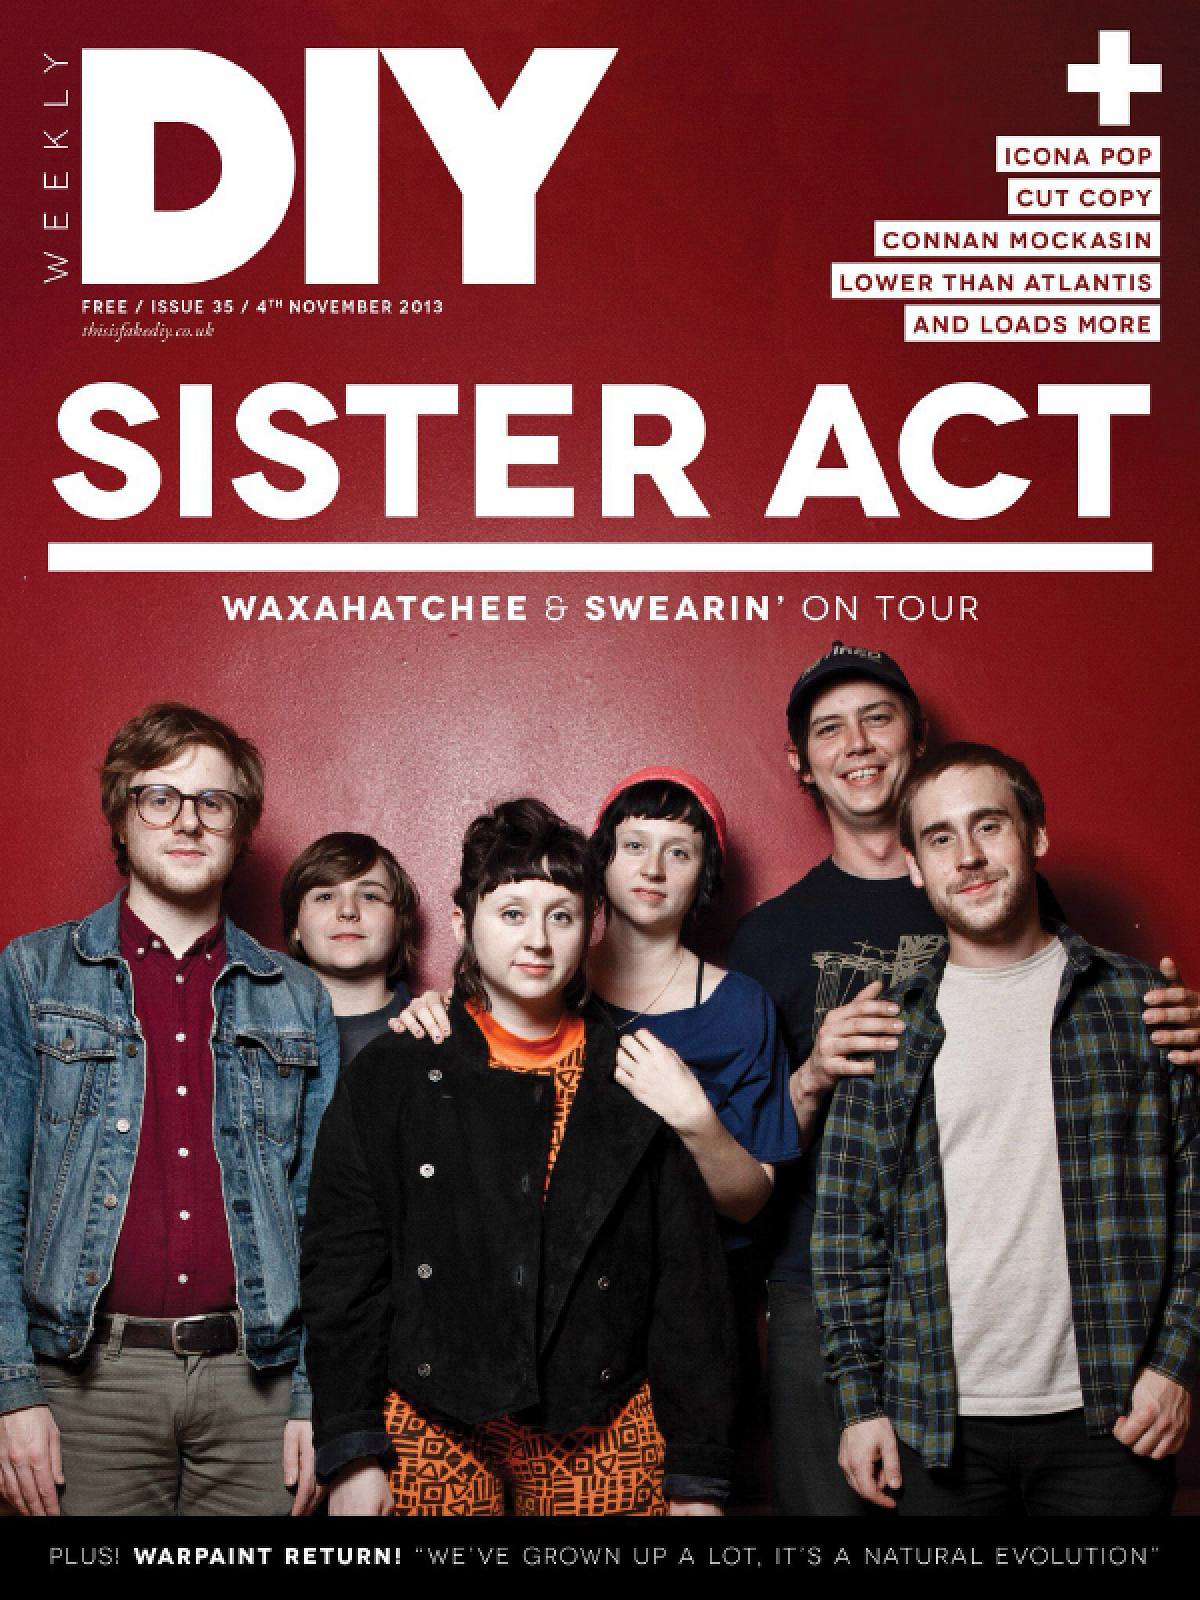 DIY Weekly, 4th November 2013